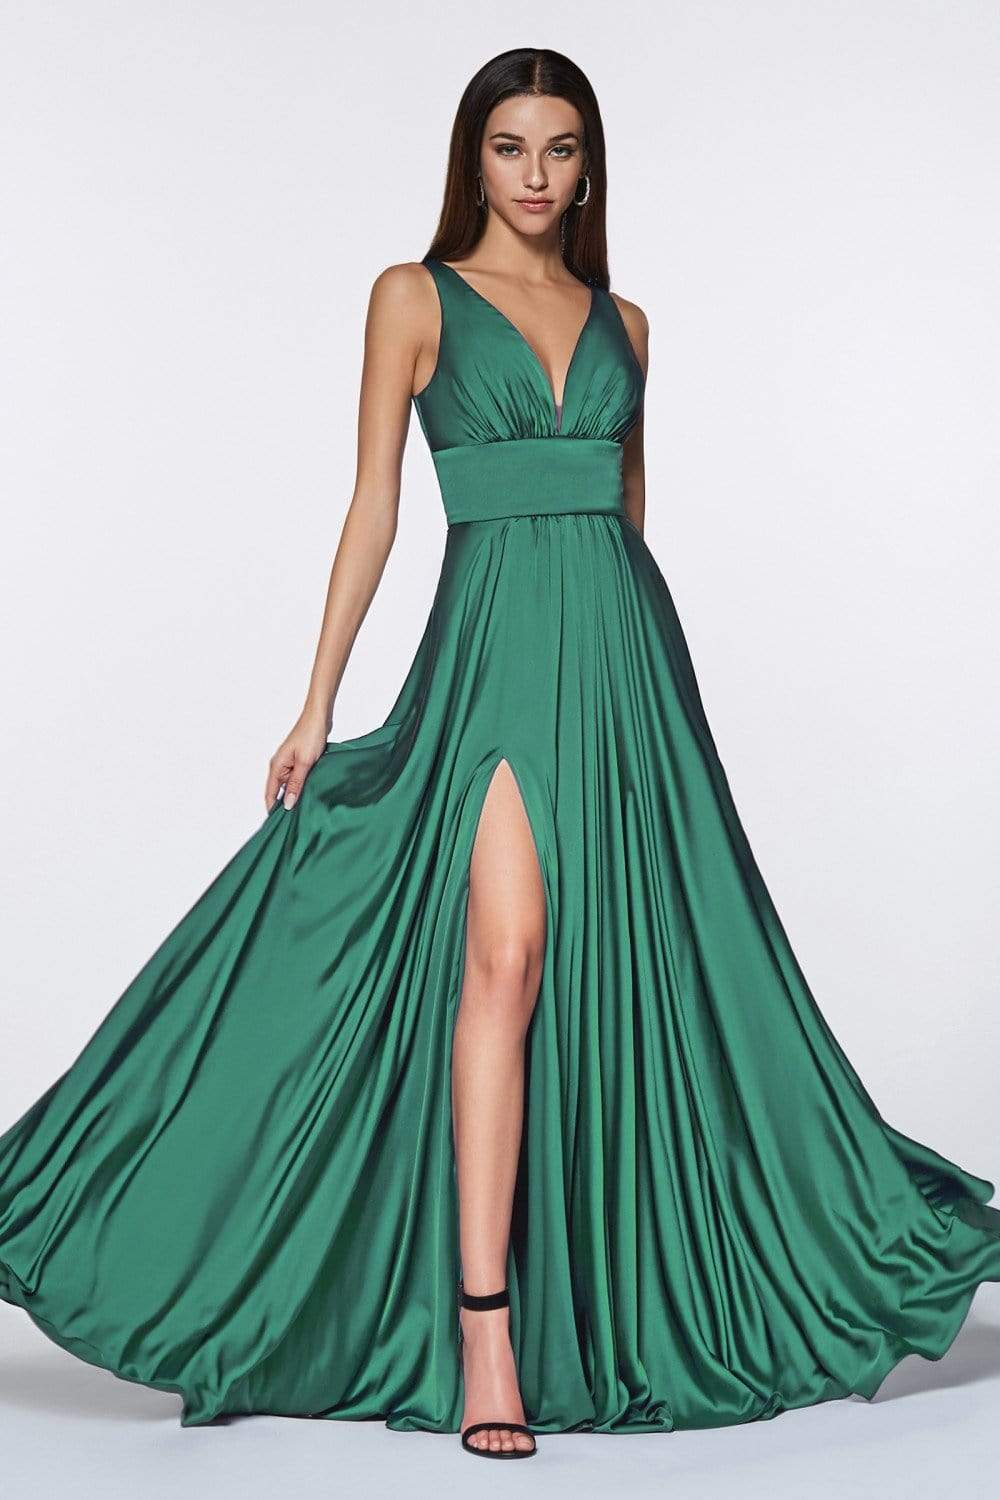 Cinderella Divine - 7469 Sleeveless V Neck Flowing Satin Gown in Green